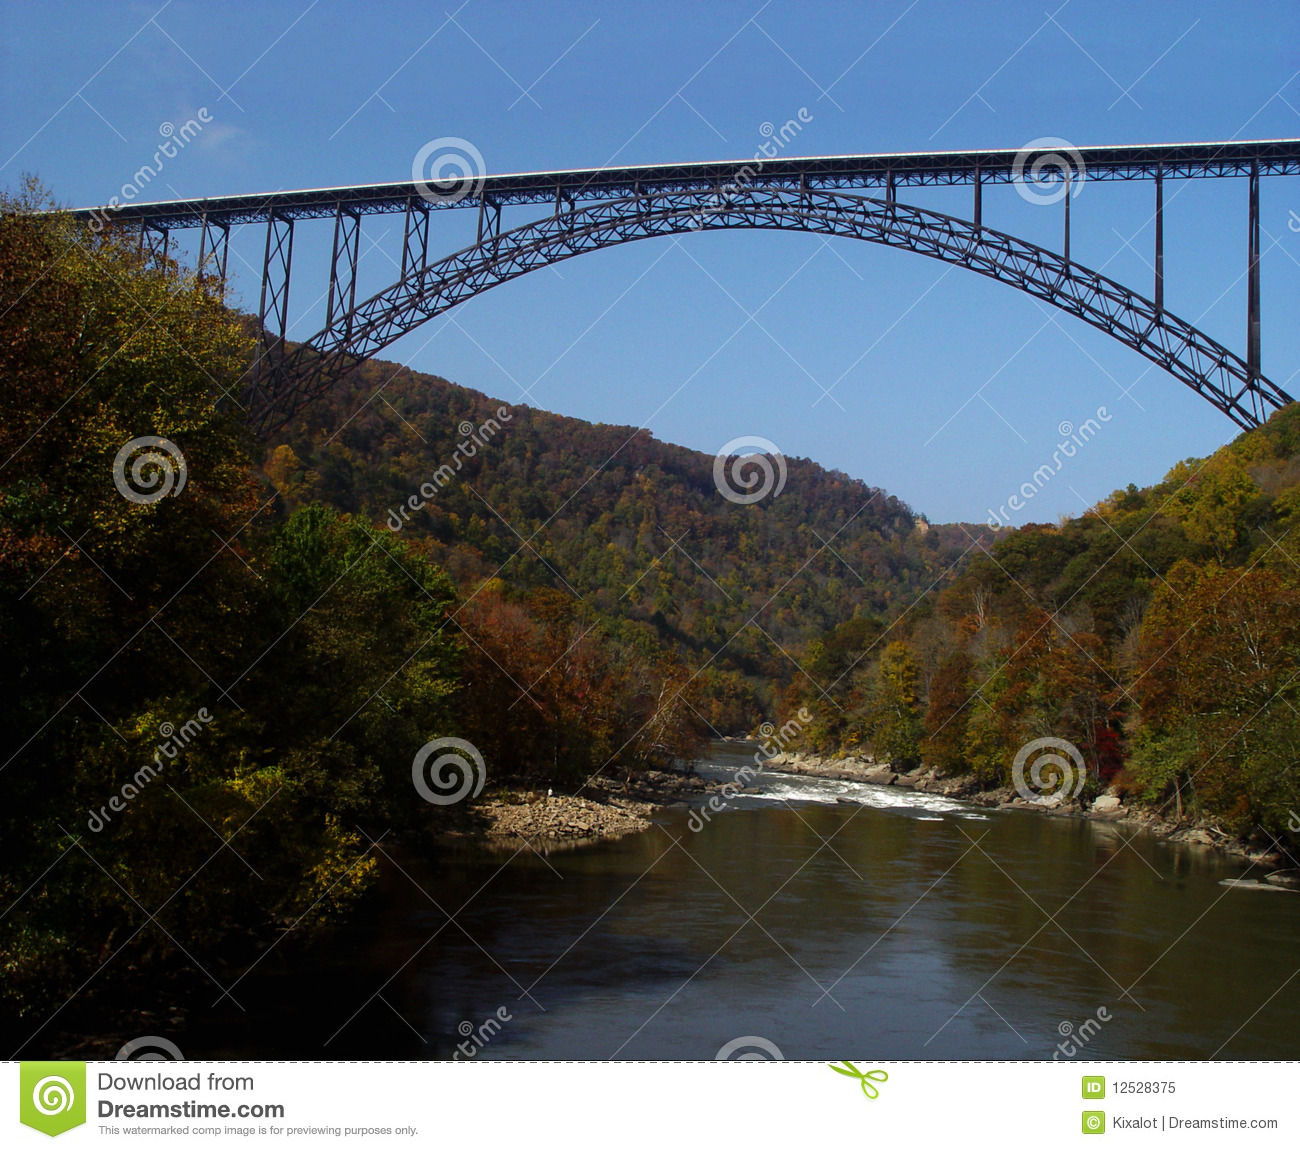 steel-arch  New River Gorge Bridge in West Virginia spans the river    New River Gorge Bridge Fall